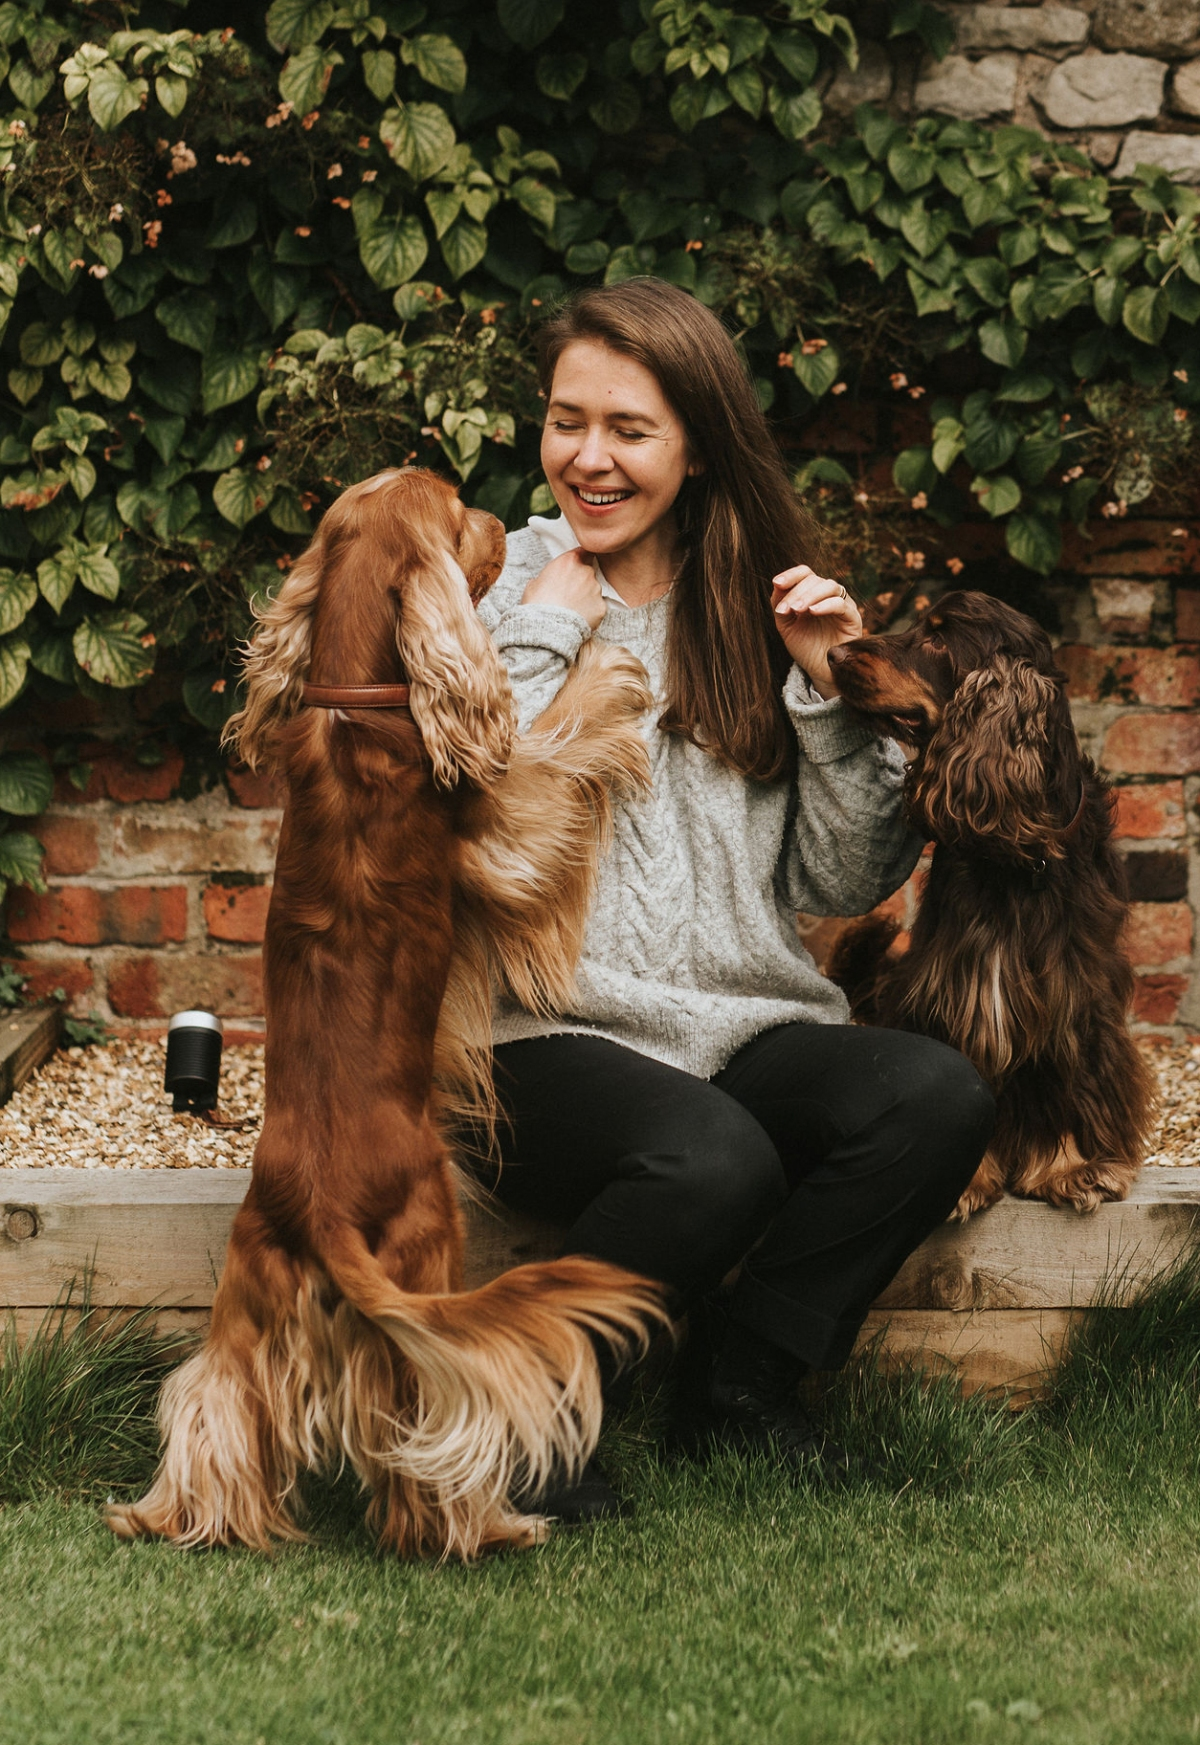 5 tips, rules, resolution and ideas for better relationship with your english cocker spaniel / learn to understand & train your dog / walking tips with cocker spaniel / Perfect cocker spaniel book and pet blog / Natalia Ashton, Cooper, sable cocker spaniel & Fred, chocolate and tan cocker spaniel / (C)